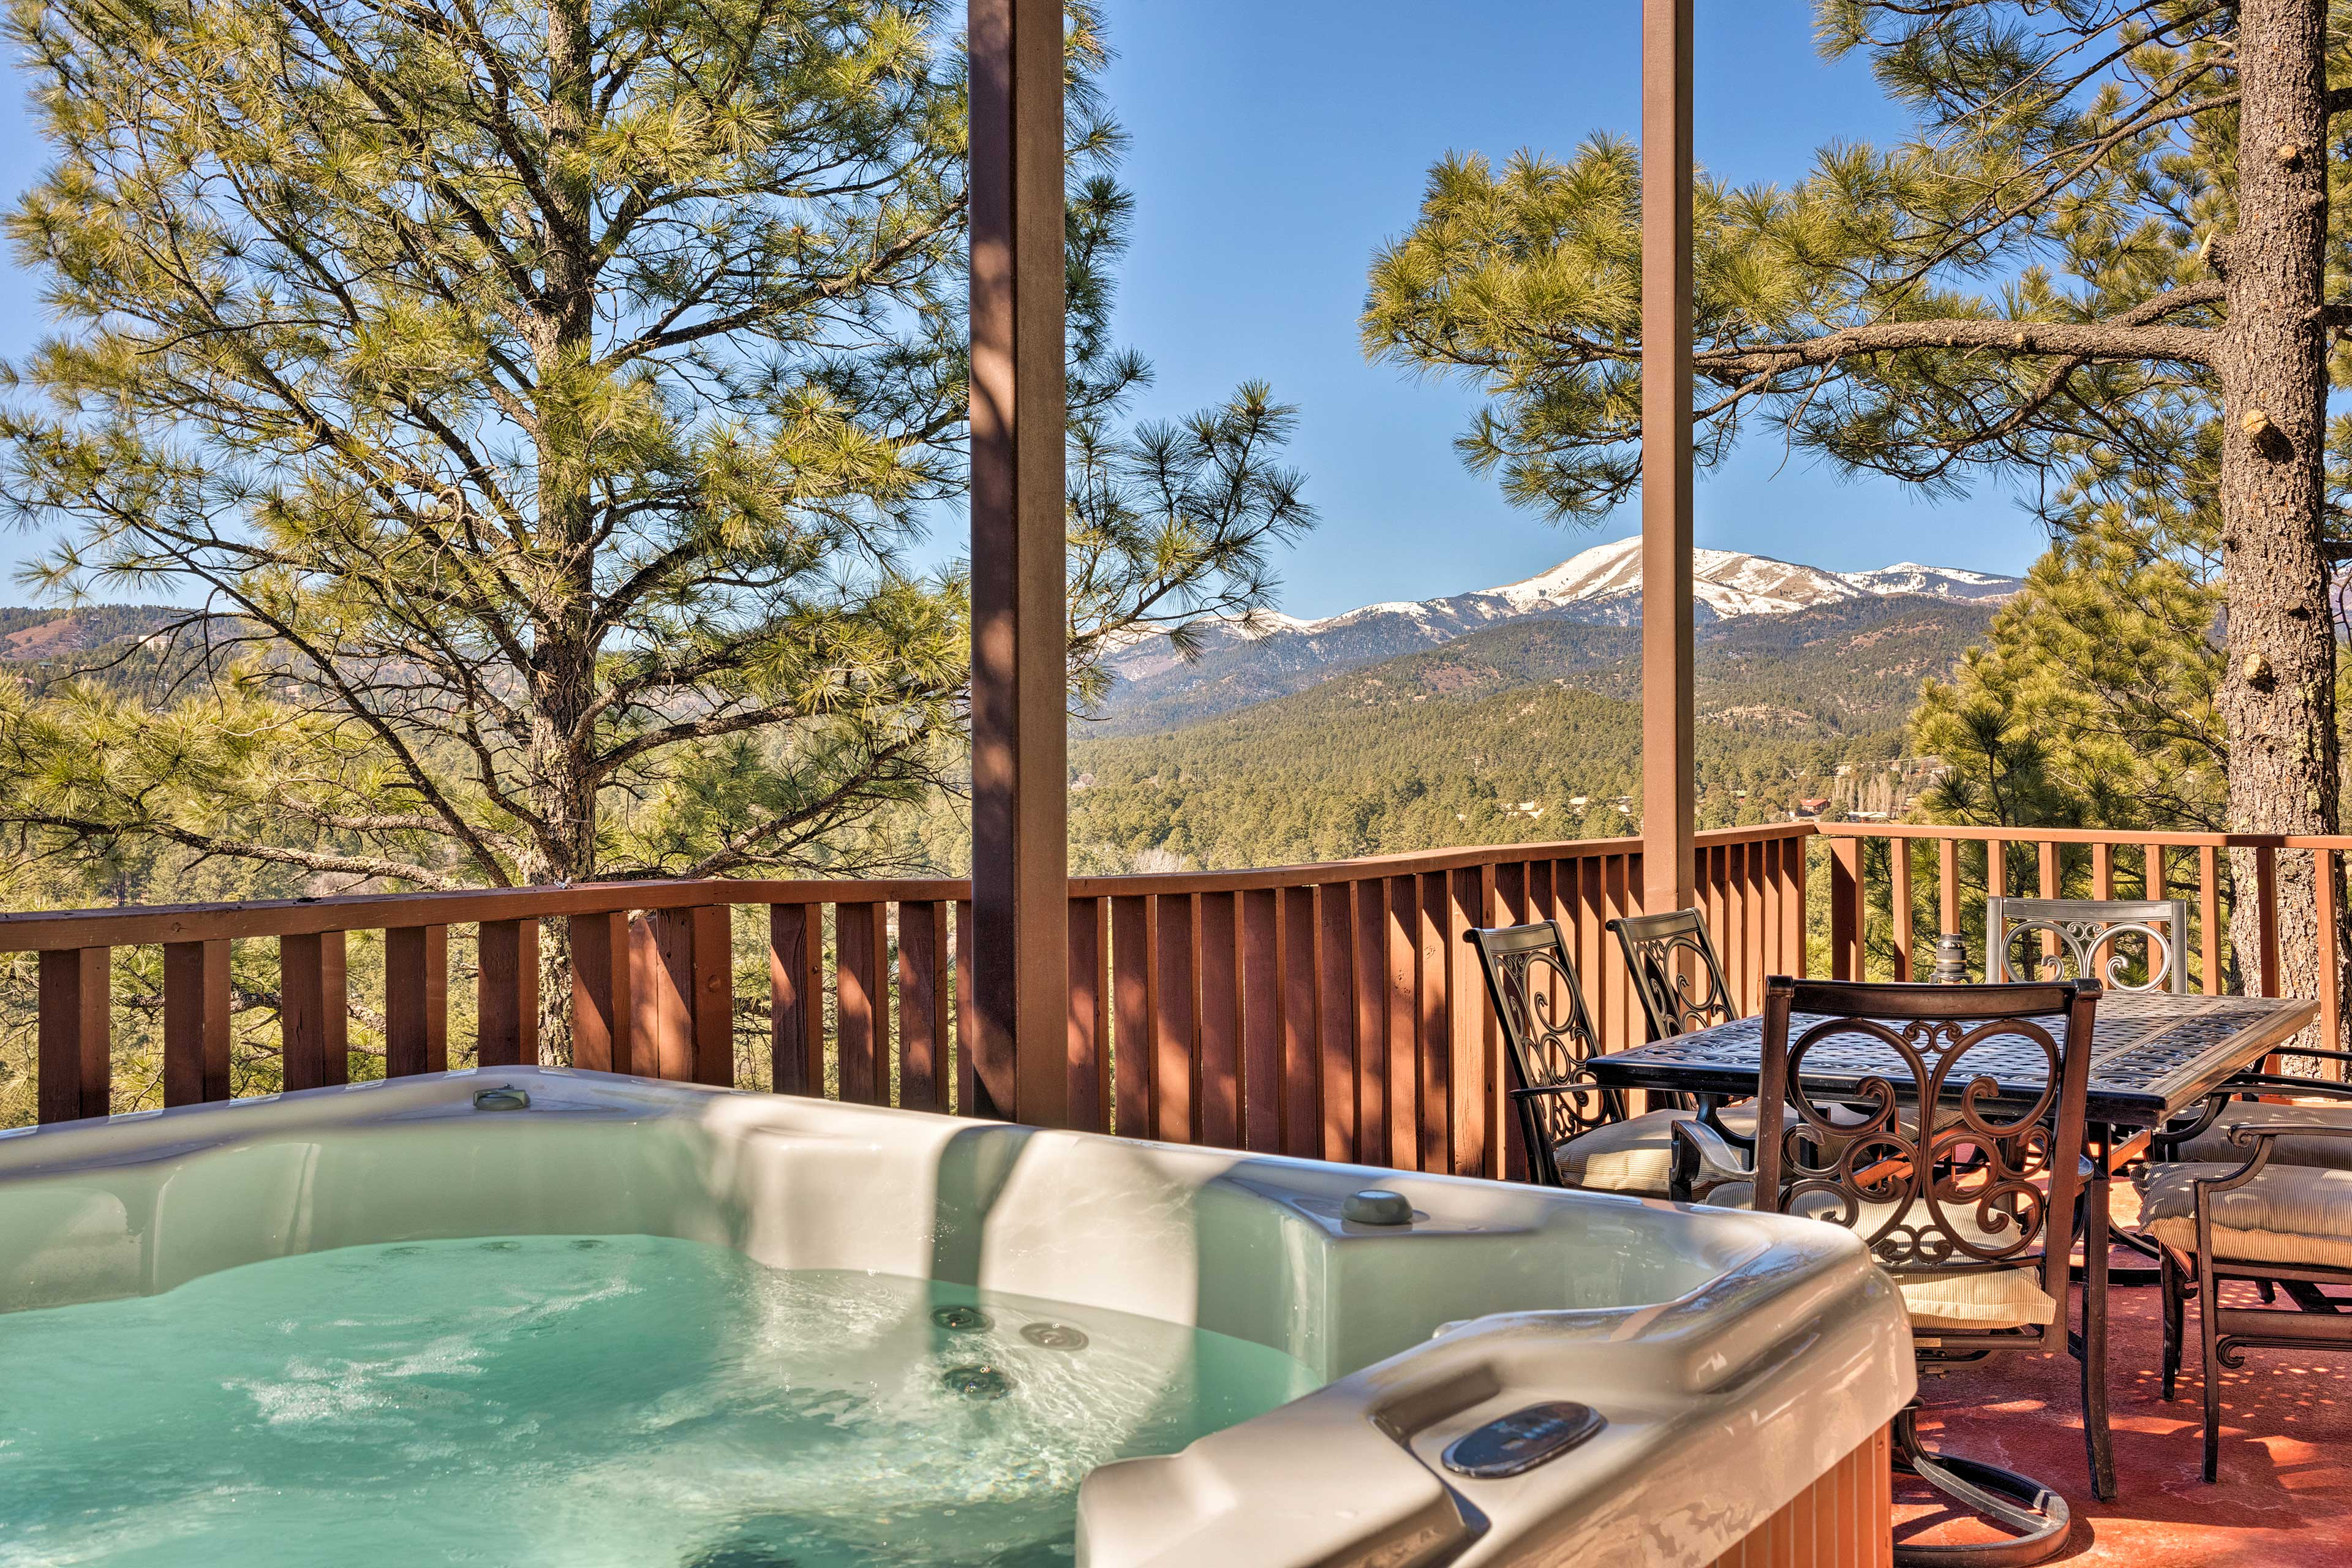 Book a trip to this luxurious 6-bedroom, 6-bath vacation rental condo for 16.